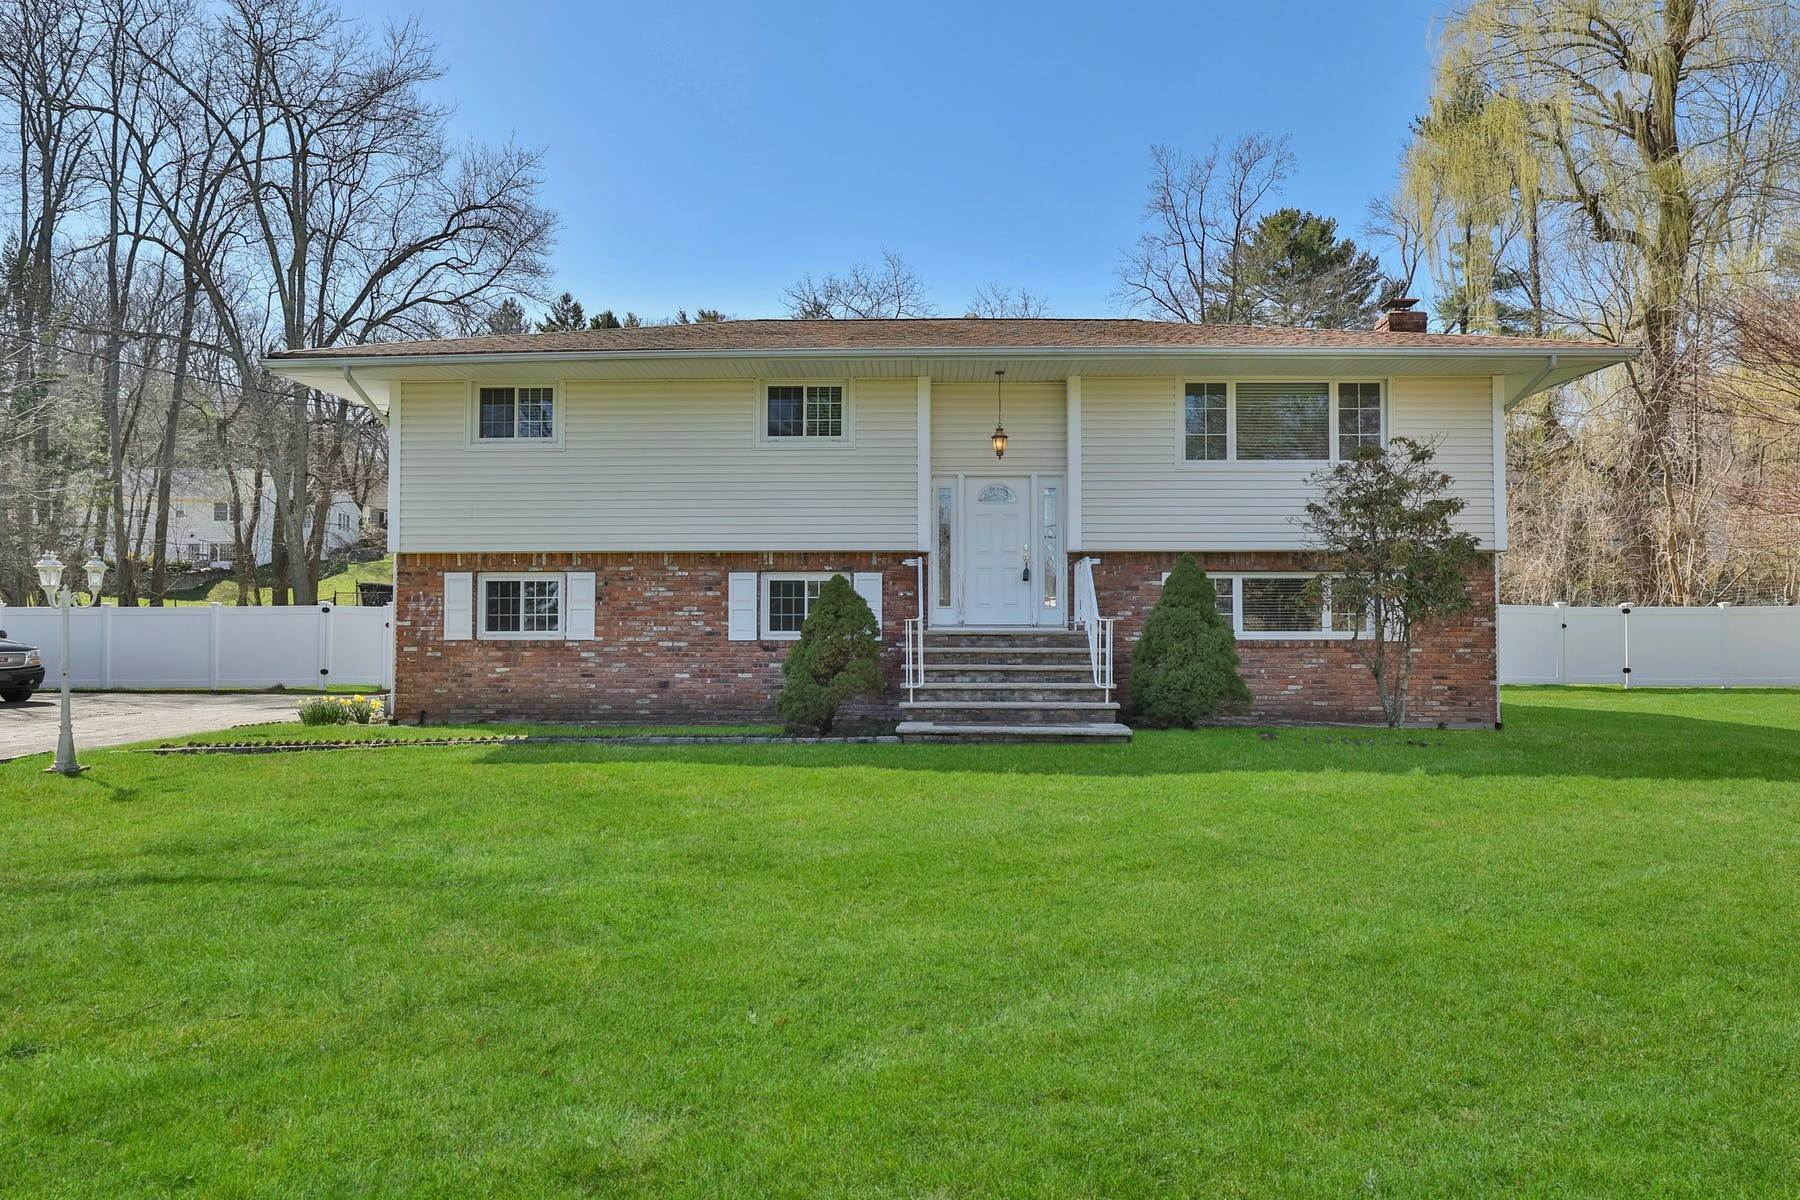 Single Family Homes for Sale at Location, Location, Location 514 North Broadway Upper Nyack, New York 10960 United States